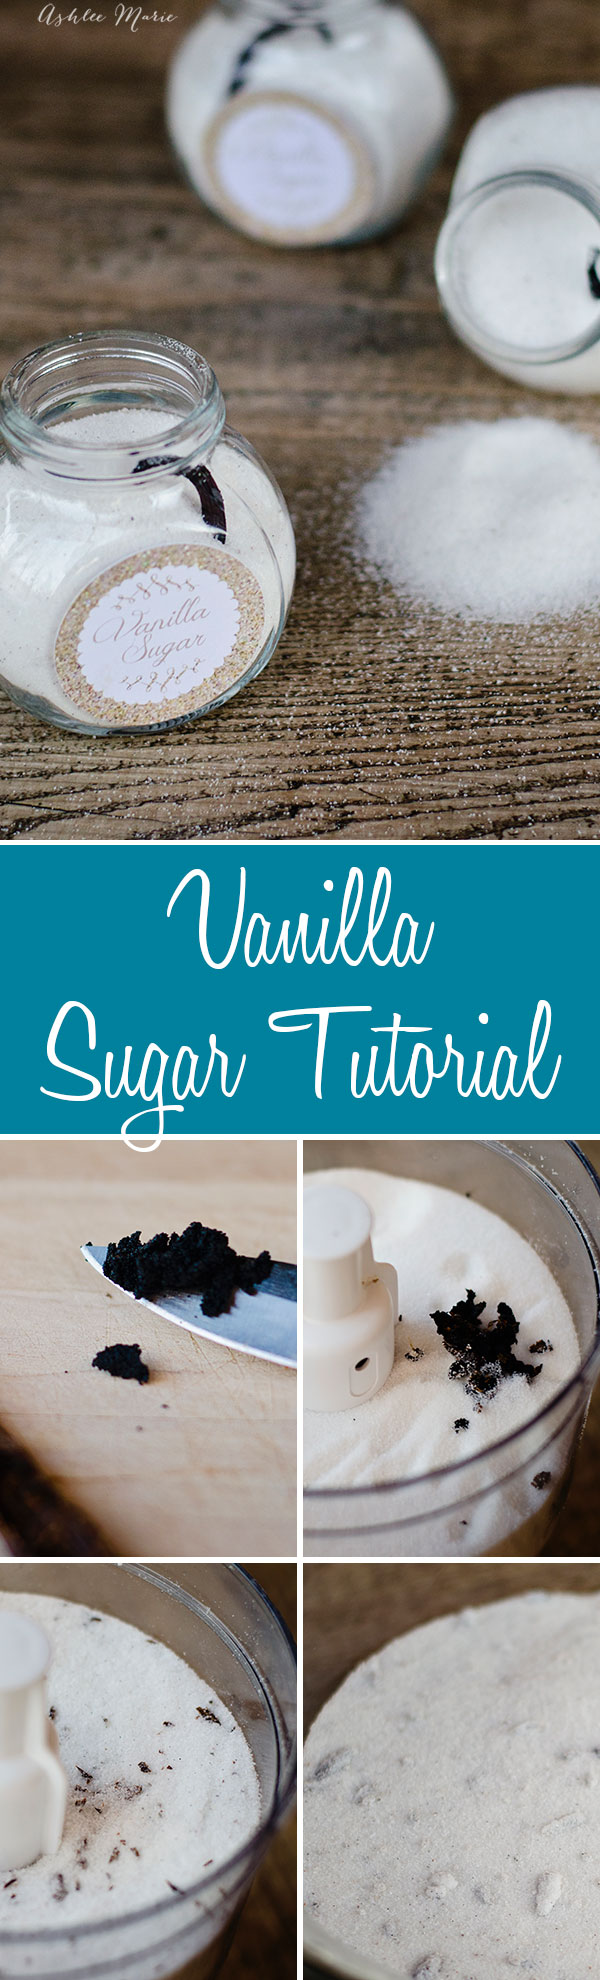 a tutorial for making your own homemade vanilla sugar with printable labels. I actually keep a large batch of vanilla sugar on hand constantly for tons of baked goods